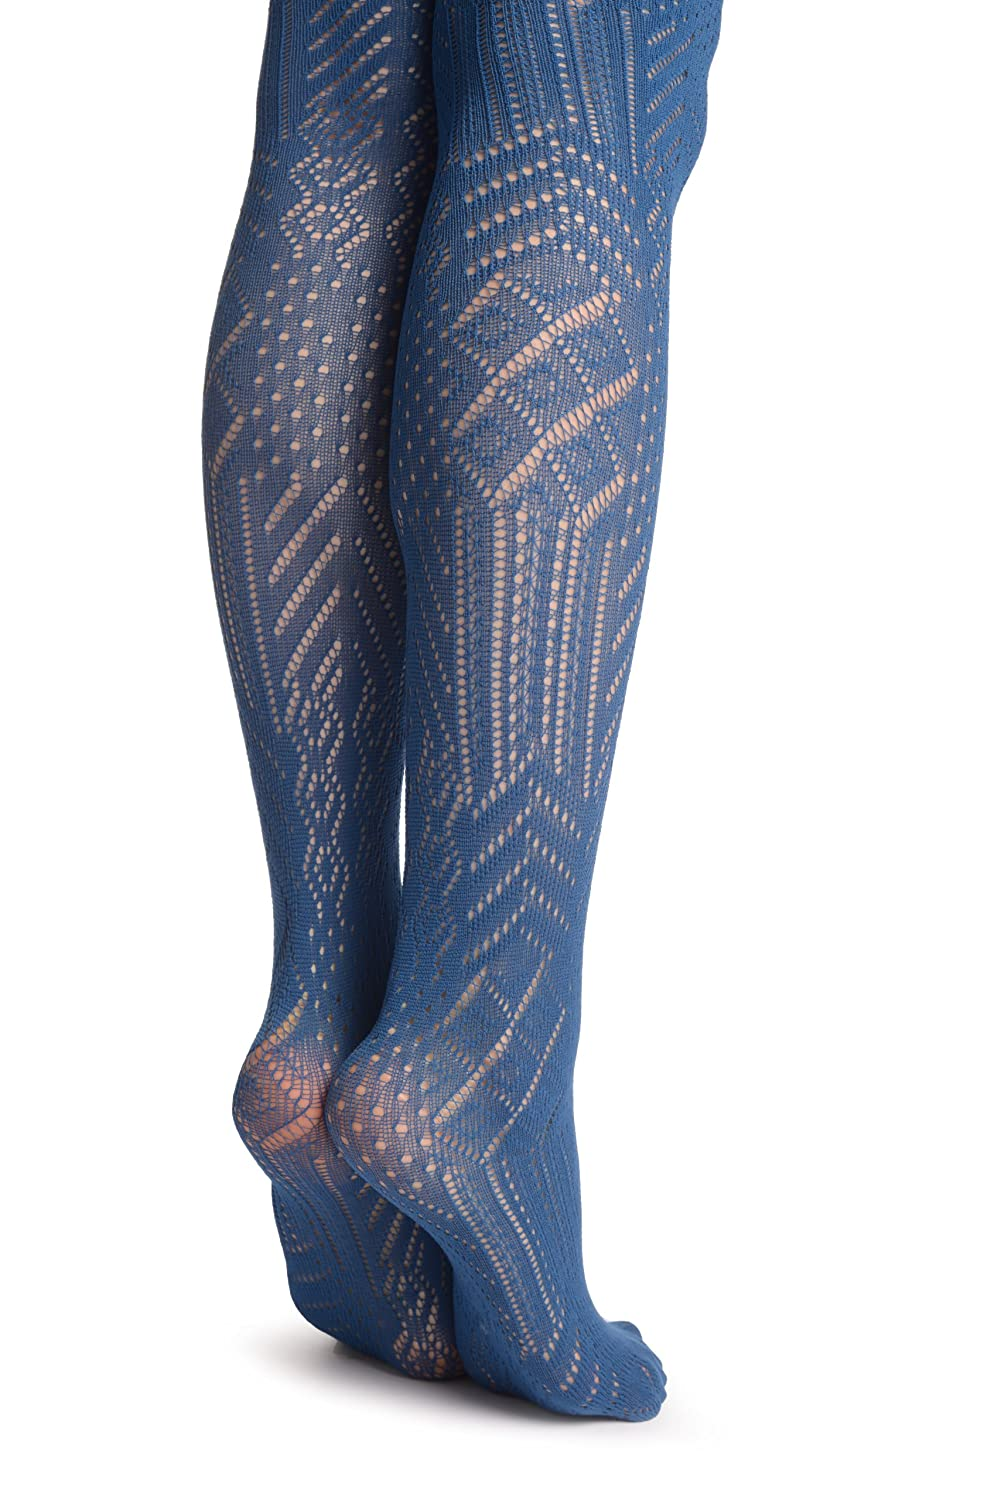 6afc593935d Navy Blue Geometrical Crochet Lace - Blue Geometrical Tights  Amazon.co.uk   Clothing